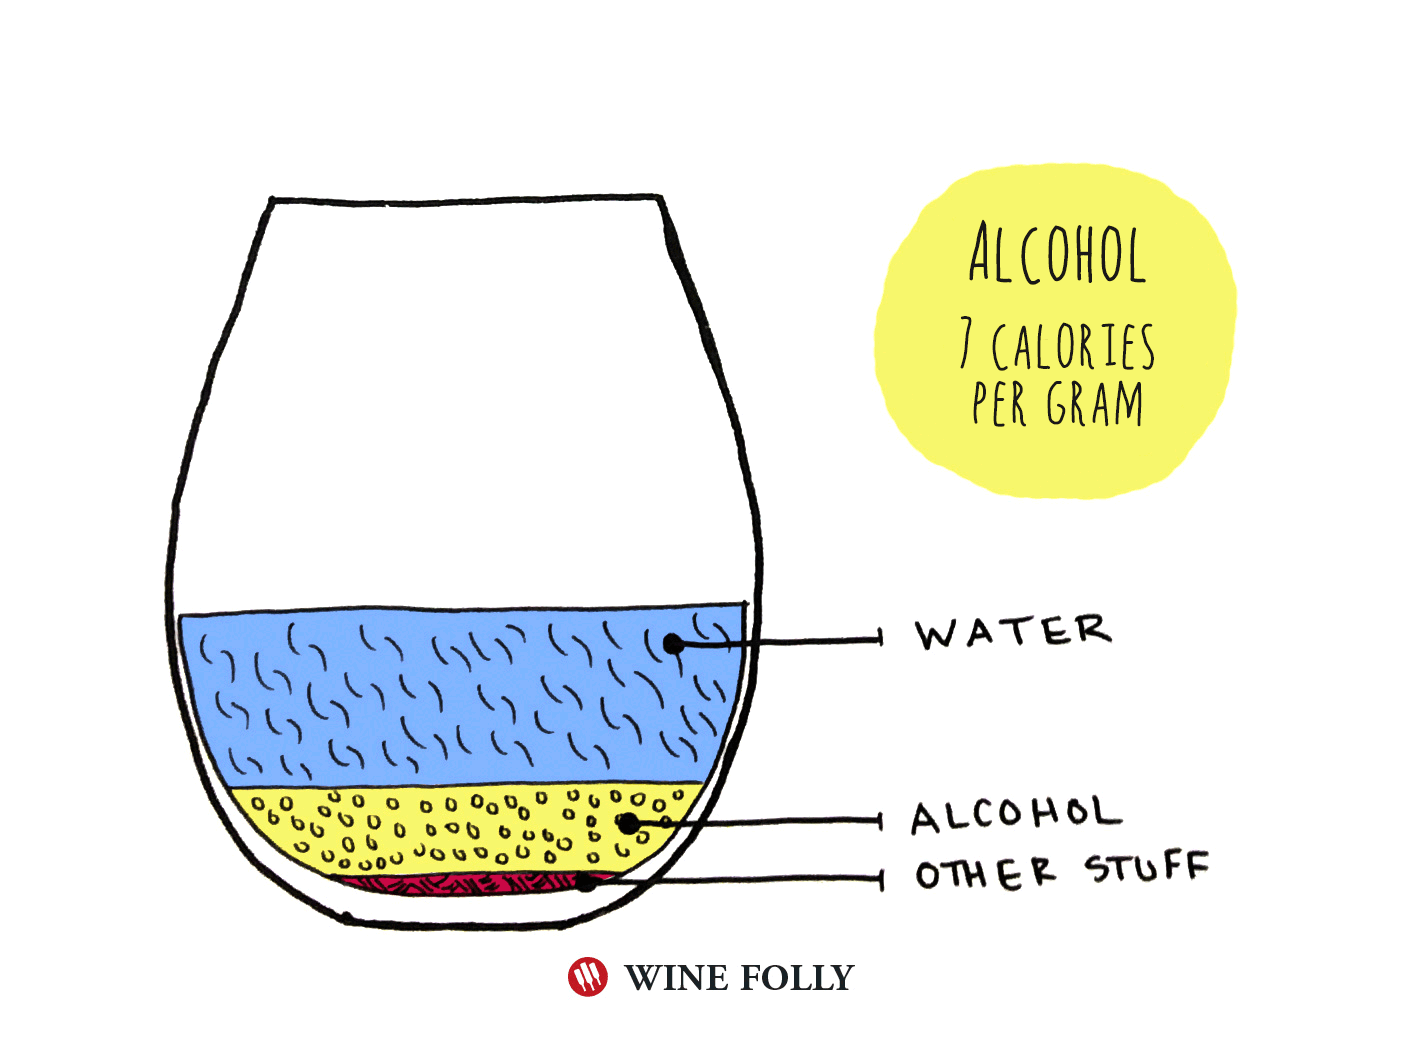 Wine contains alcohol calories